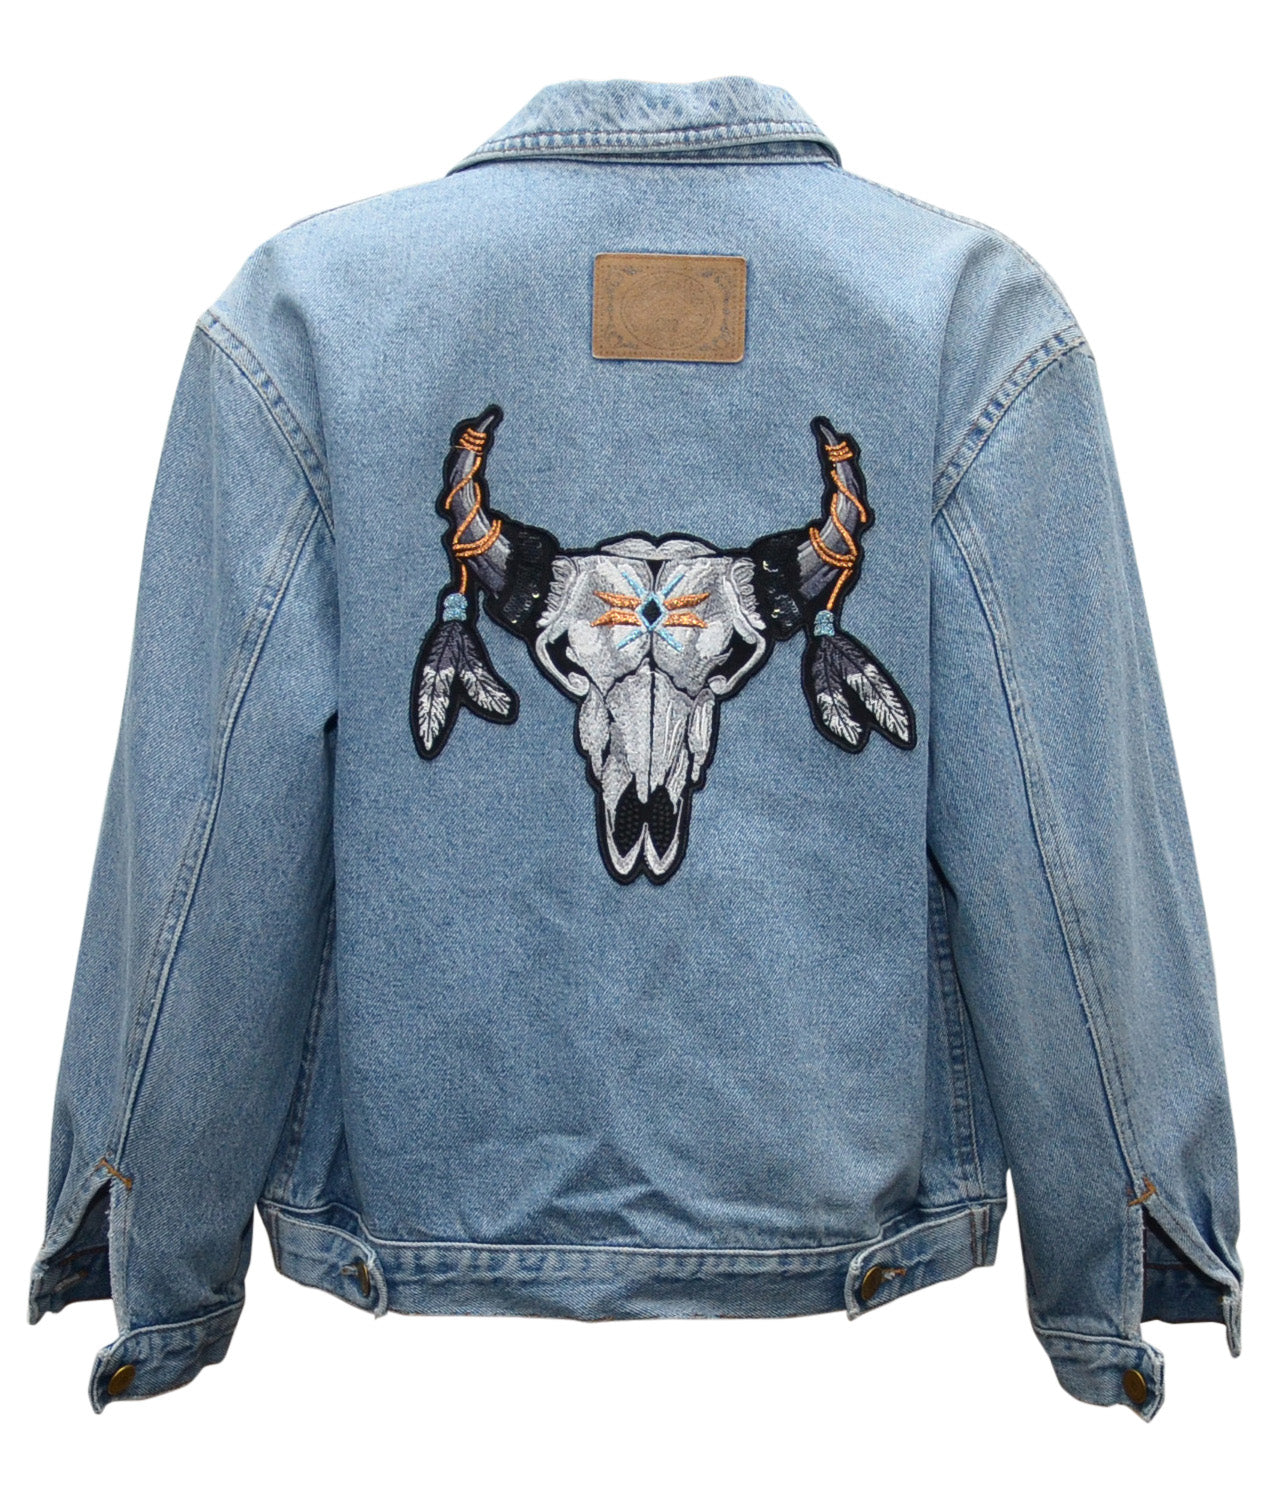 Custom Skull Denim Jacket